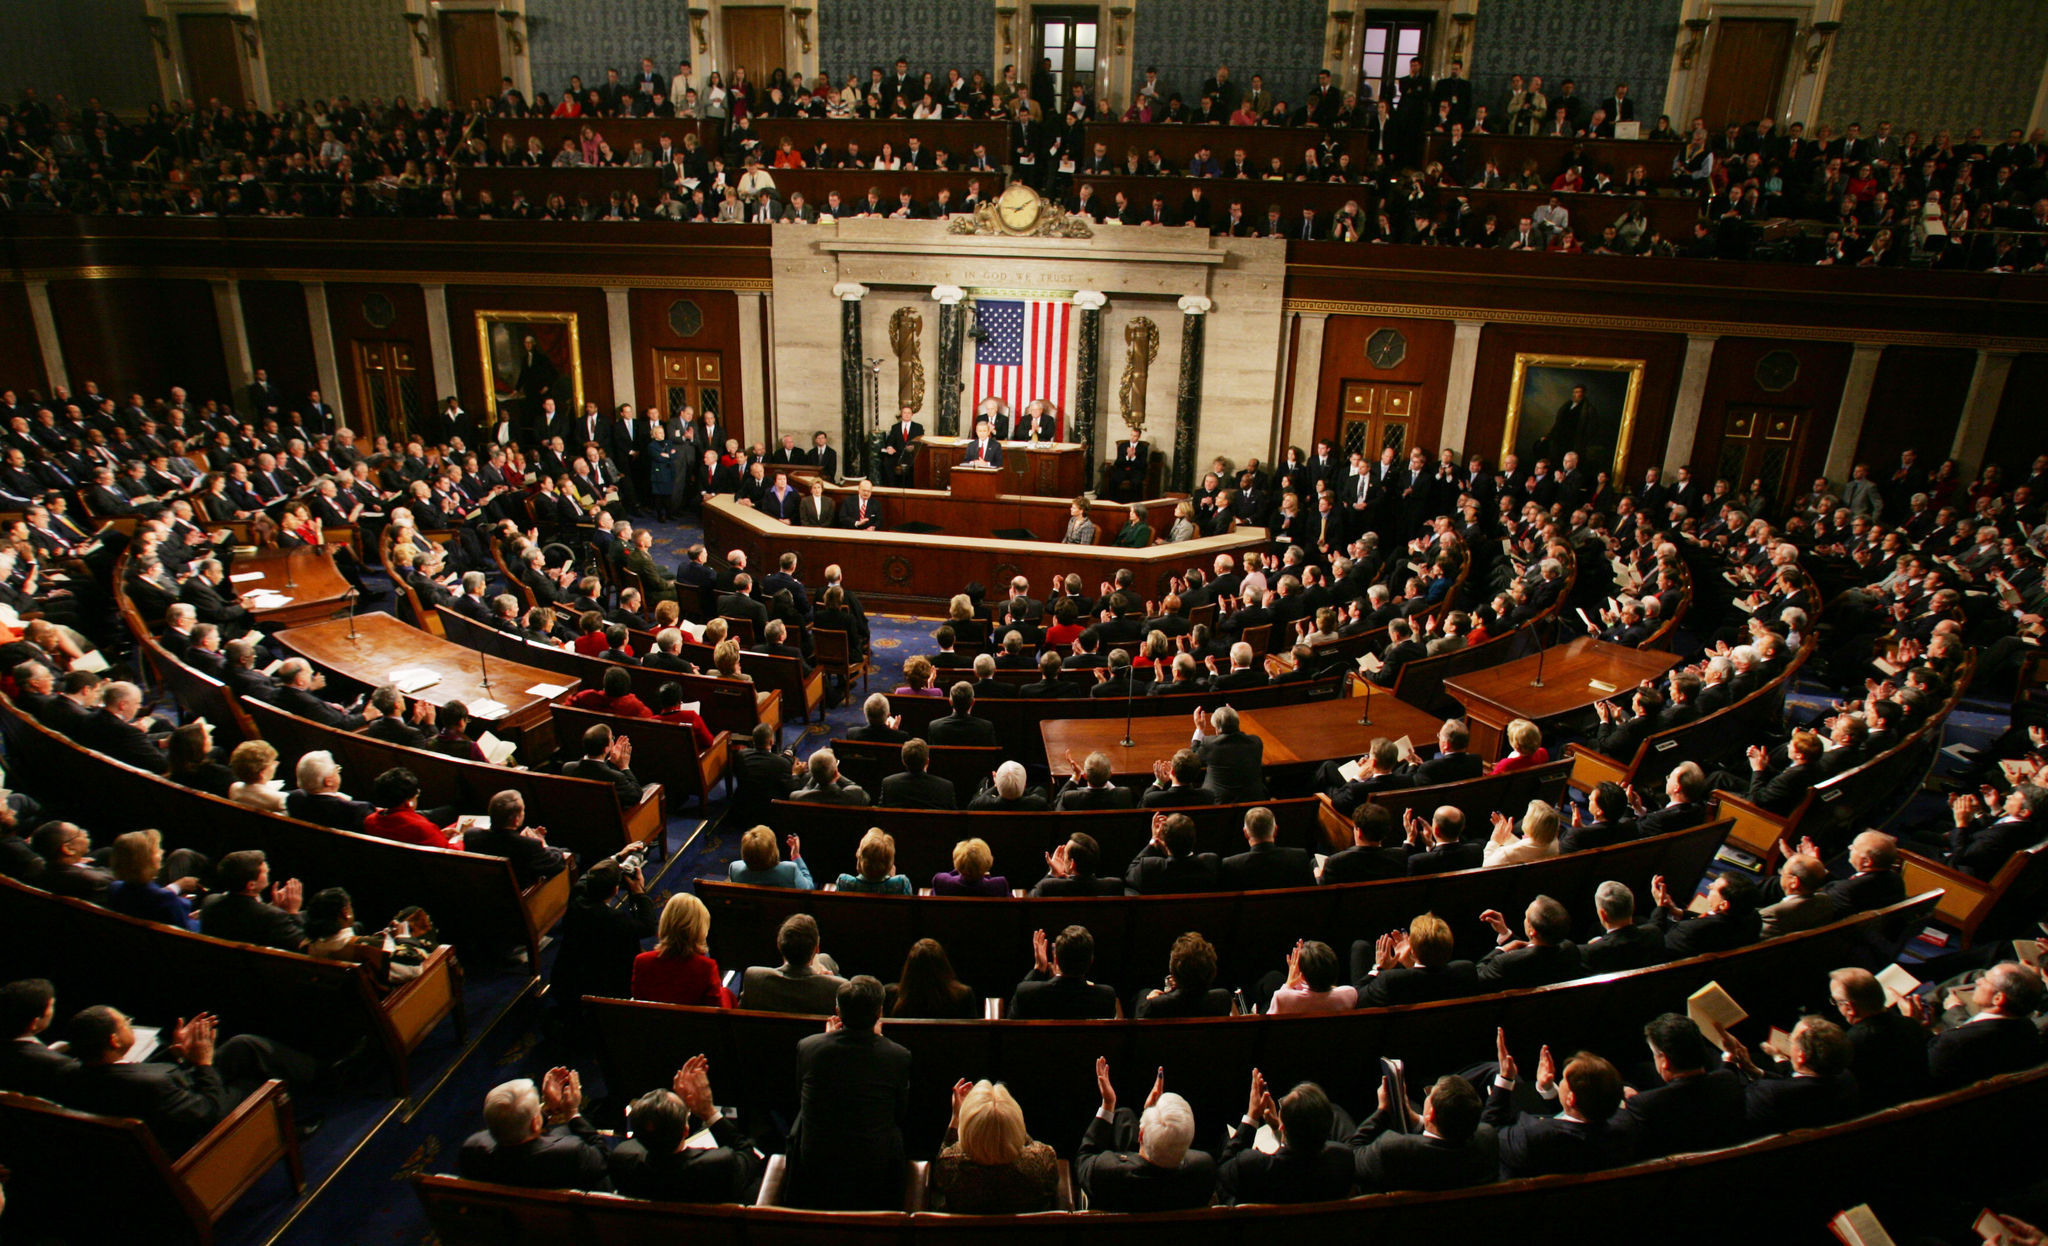 CONGRESS MOVES TO DEFUND PLANNED PARENTHOOD